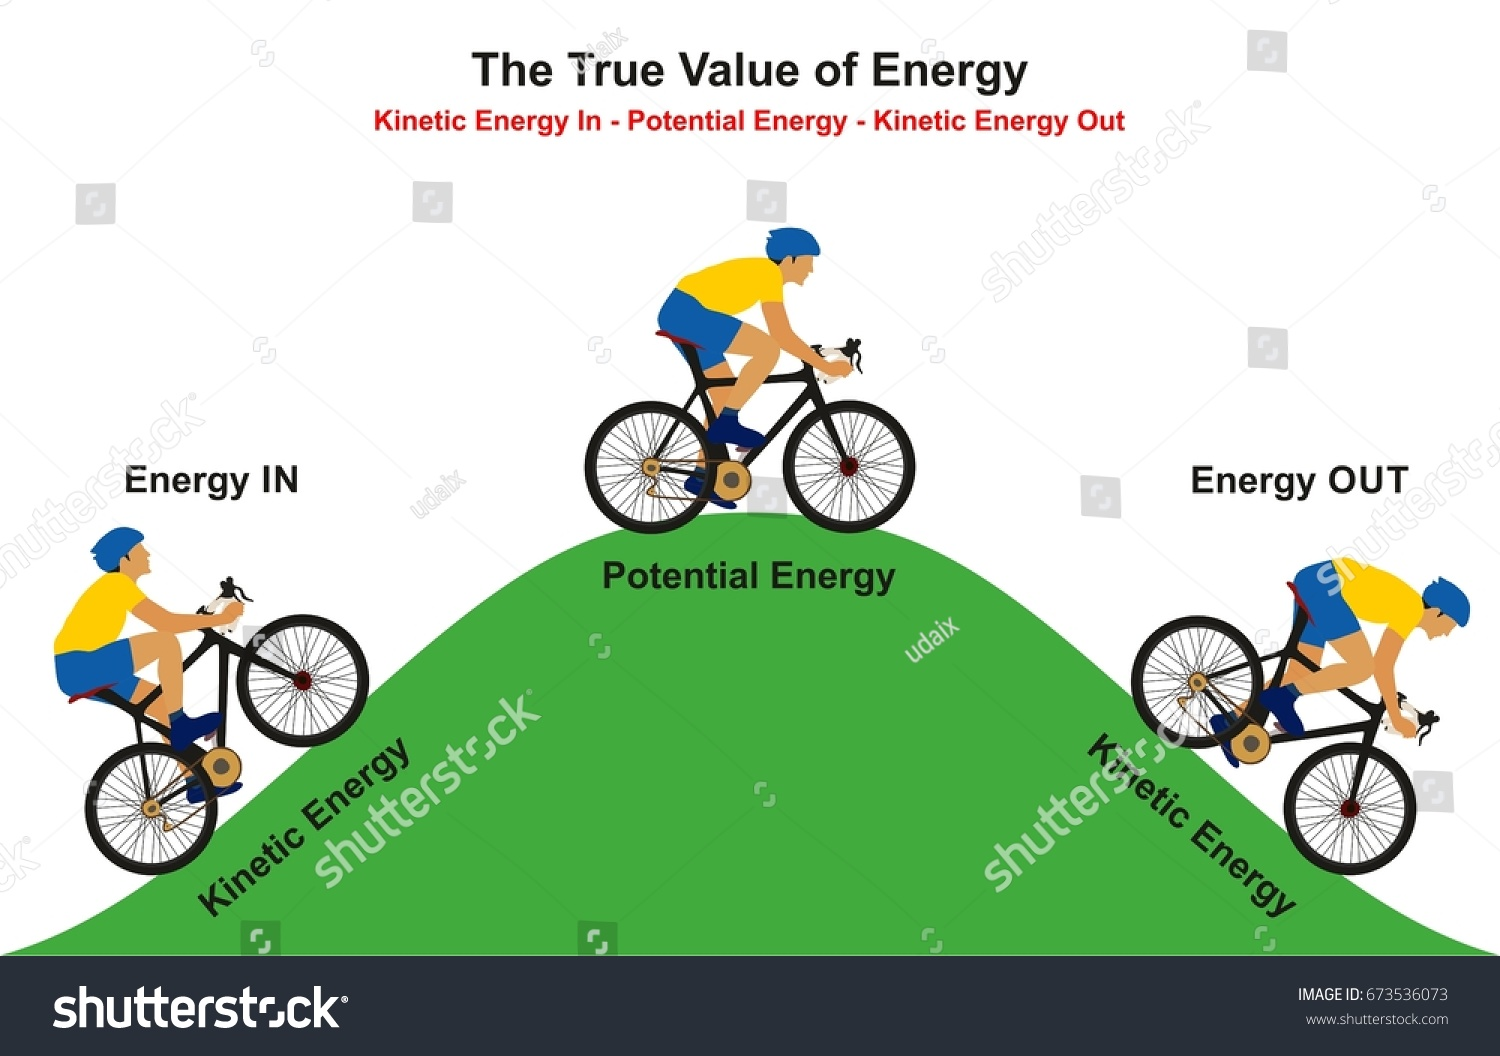 energy transformation diagram examples usb to rca wiring of transformations in sports simple true value infographic example stock vector photosynthesis